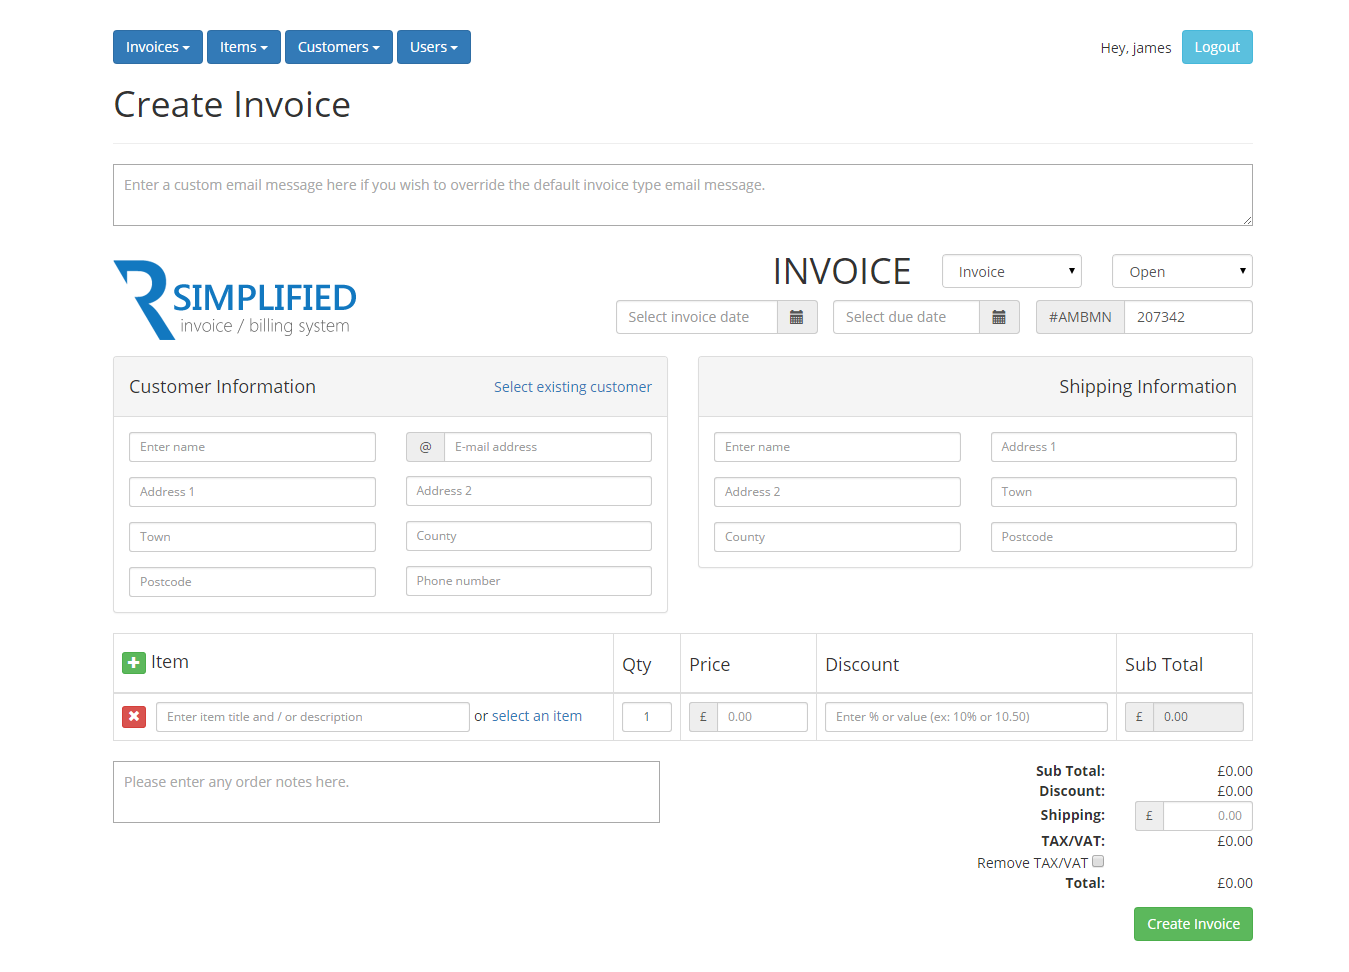 Breakupus  Ravishing Simplified Php Invoice  Billing System By Rebootdigitaluk  With Engaging  Createinvoicepng  With Endearing Neat Receipts Quickbooks Also Template For Receipt Of Money In Addition Toys R Us Return Policy With Receipt And How To Make A Fake Receipt Online As Well As Receipt For Payment Form Additionally Downloadable Receipt From Codecanyonnet With Breakupus  Engaging Simplified Php Invoice  Billing System By Rebootdigitaluk  With Endearing  Createinvoicepng  And Ravishing Neat Receipts Quickbooks Also Template For Receipt Of Money In Addition Toys R Us Return Policy With Receipt From Codecanyonnet